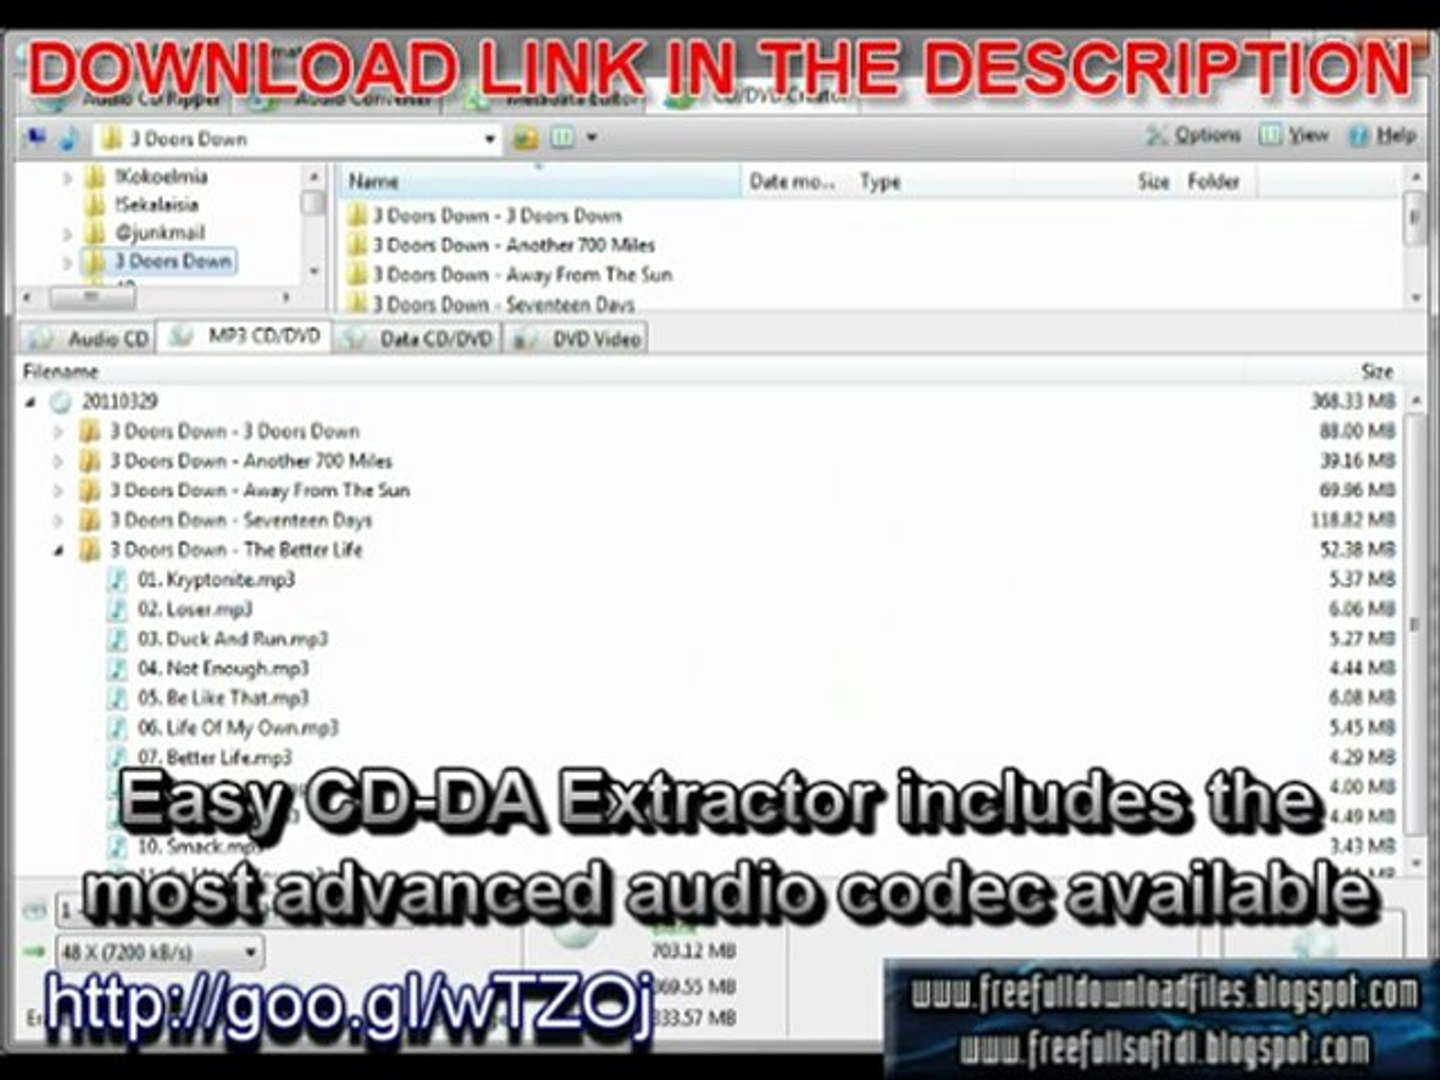 Easy CD-DA Extractor 2011 Ultimate 2 0 0 free full download with crack